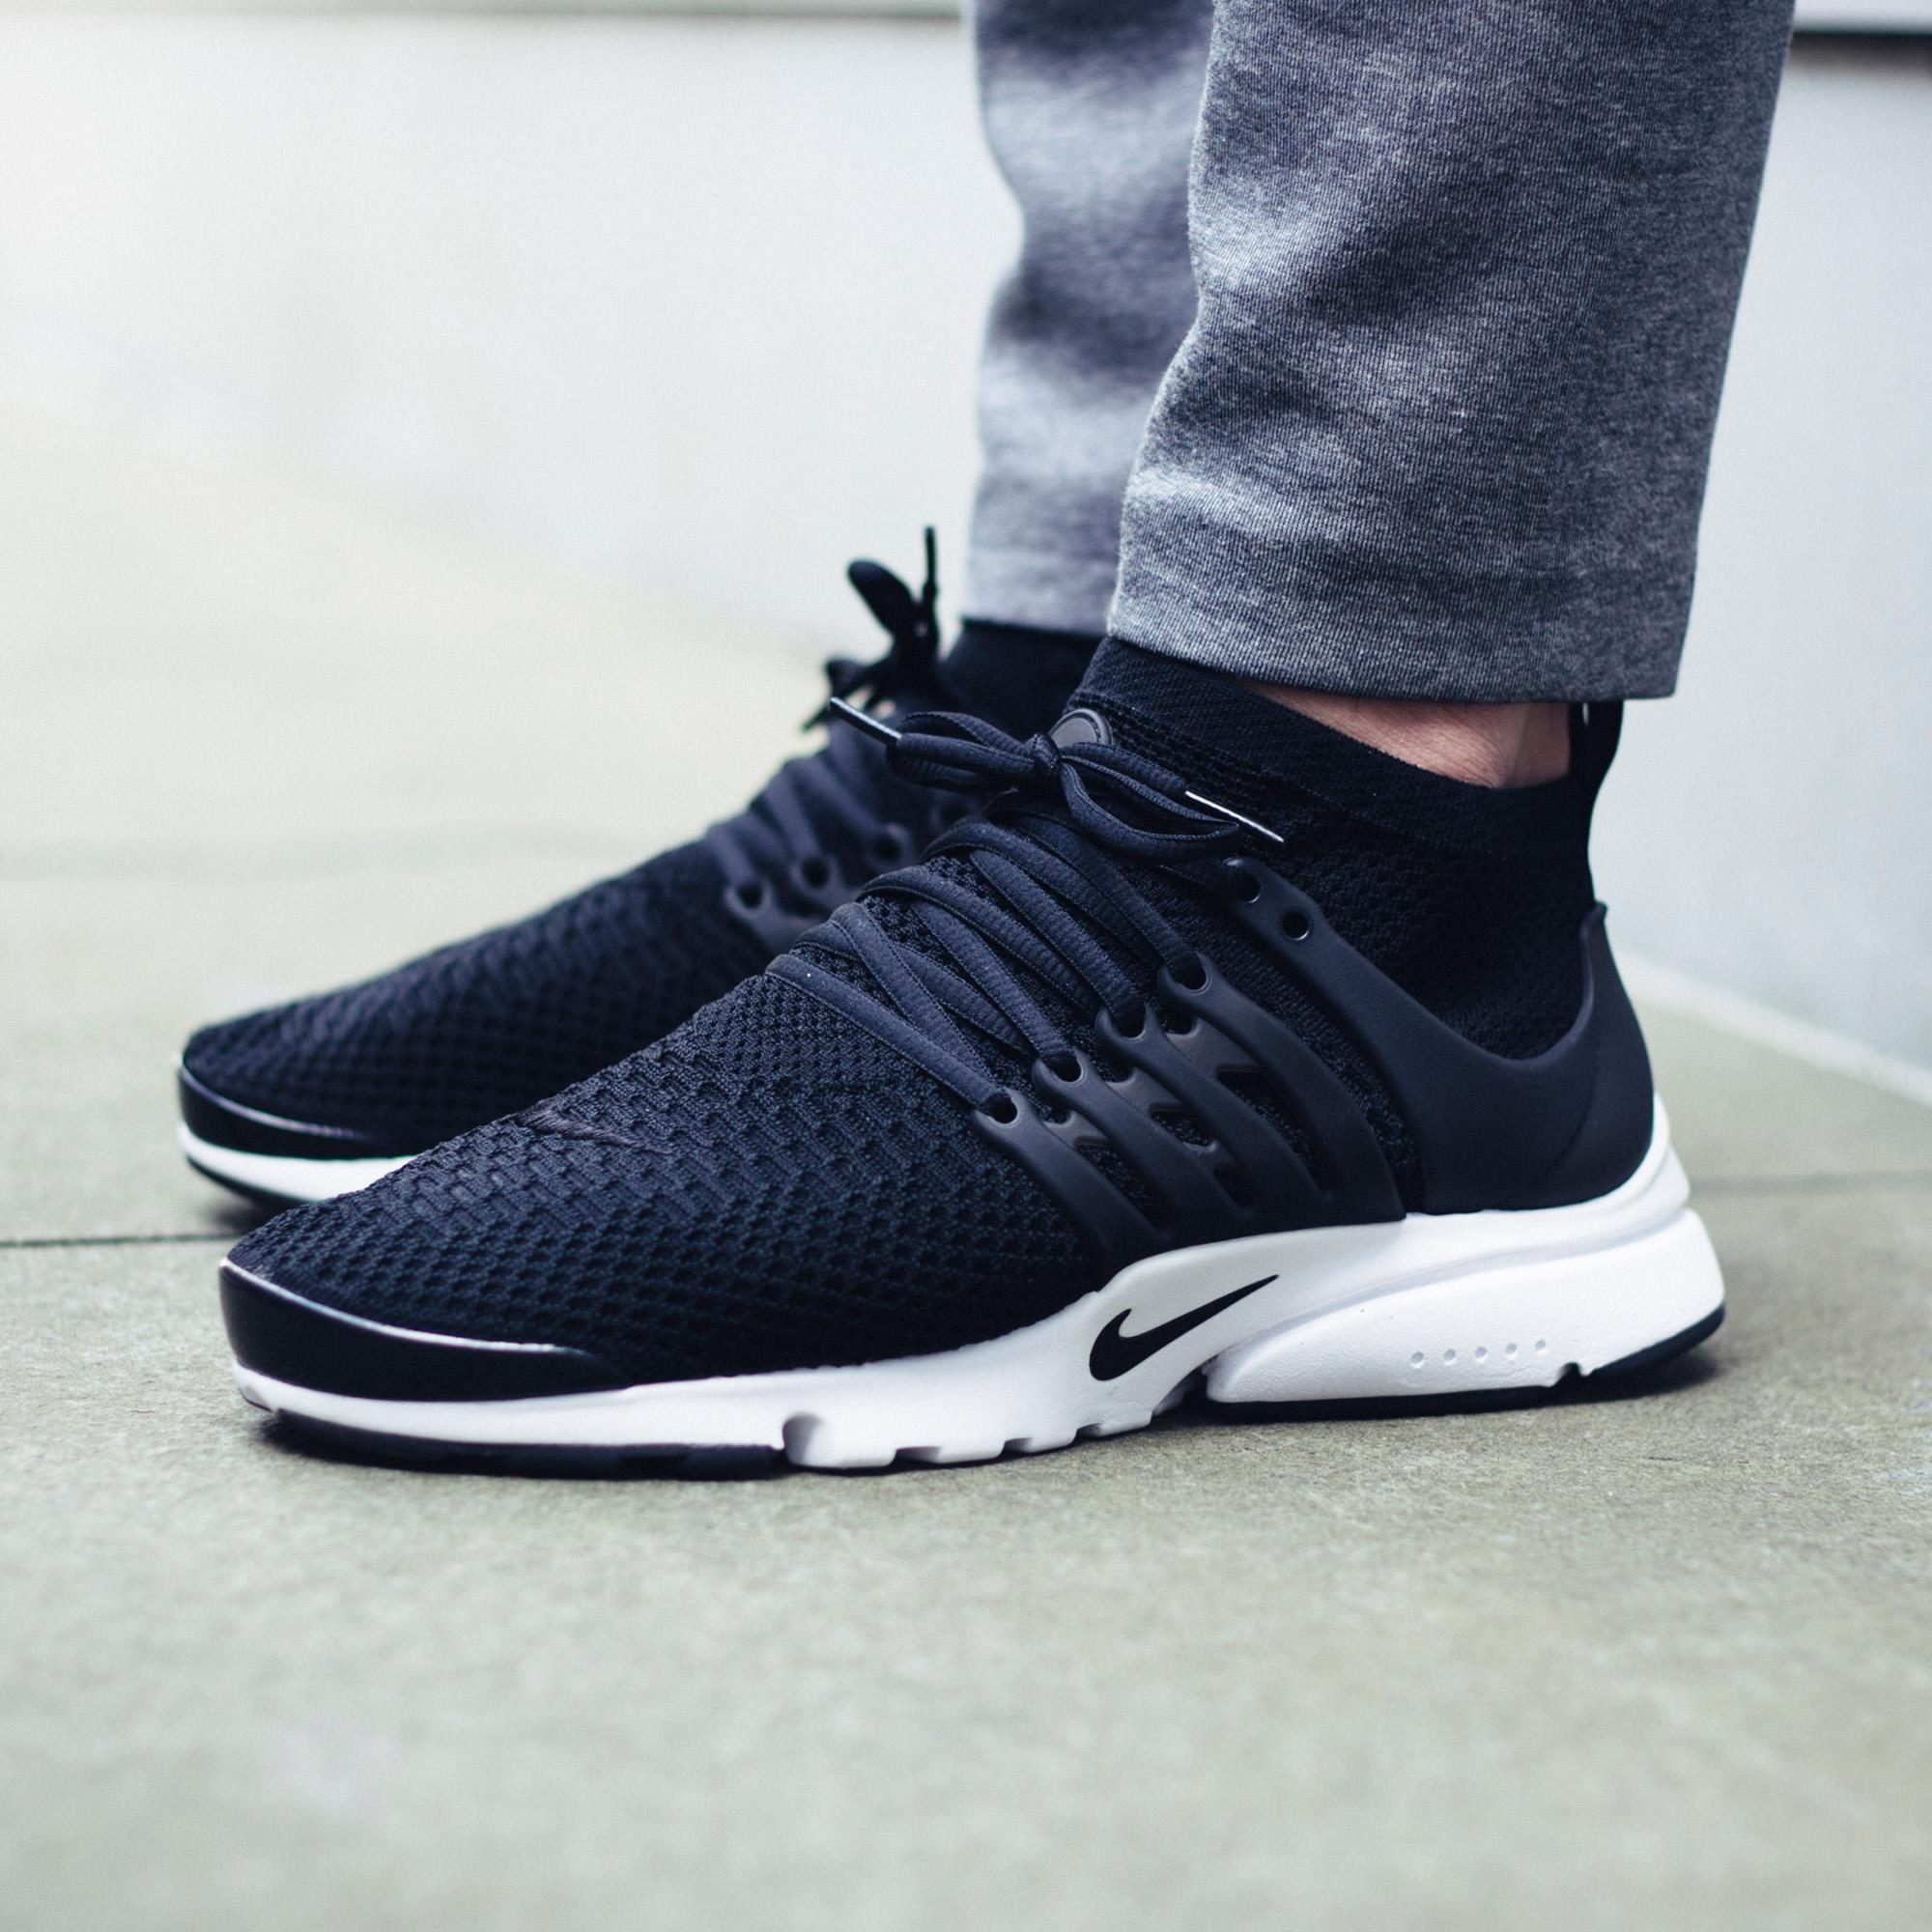 Keep It Stealth With The Nike Air Presto Flyknit Ultra Black ...